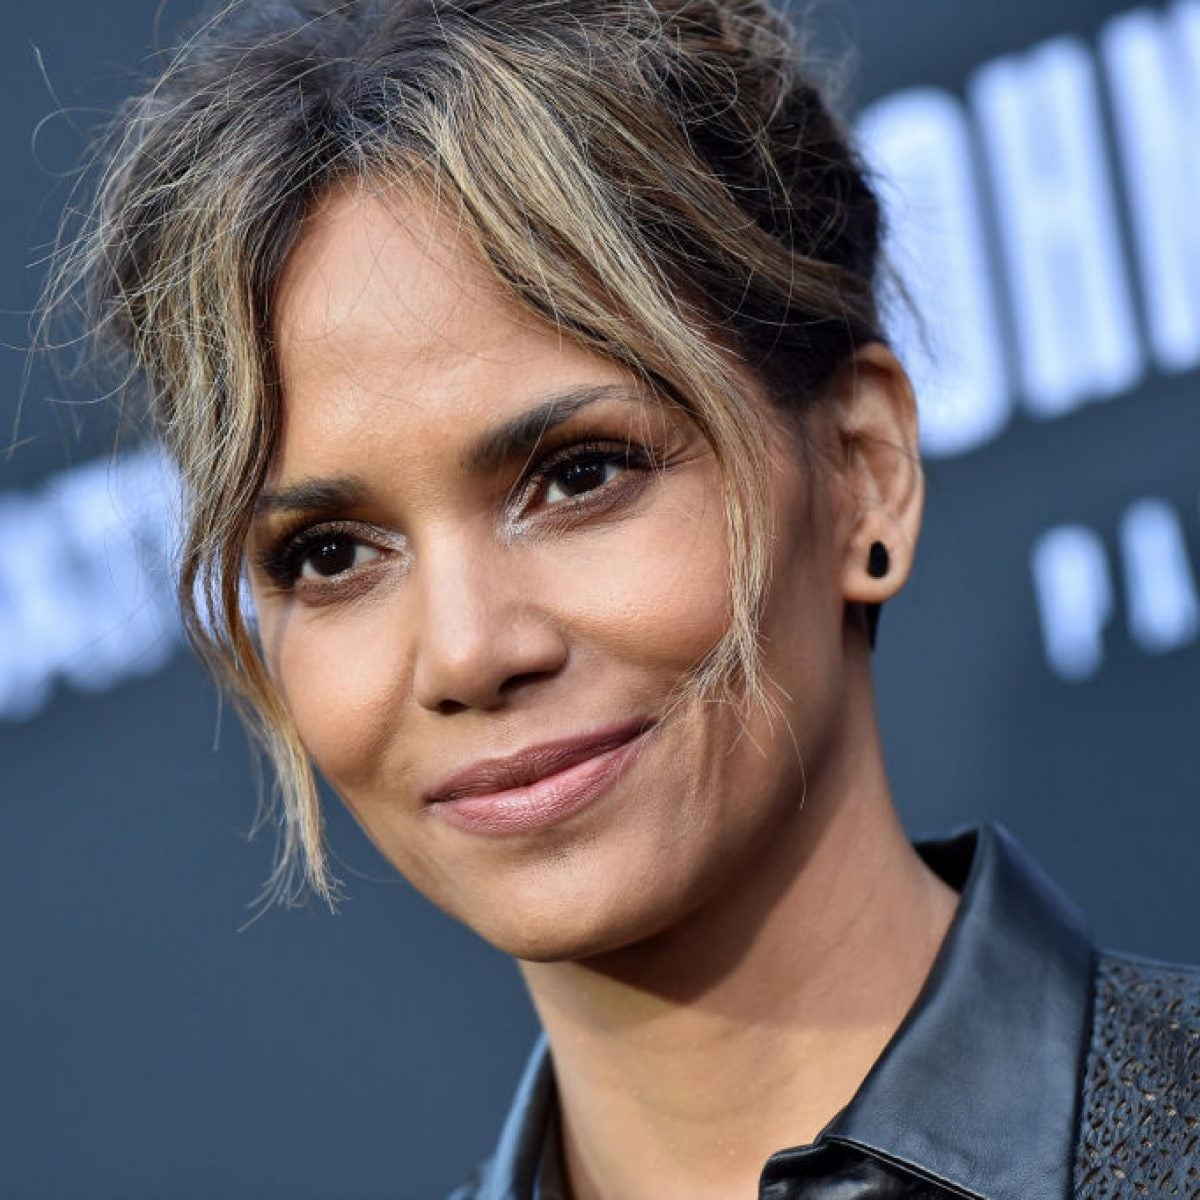 Halle Berry's Directorial Debut 'Bruised' Sells To Netflix For $20 Million